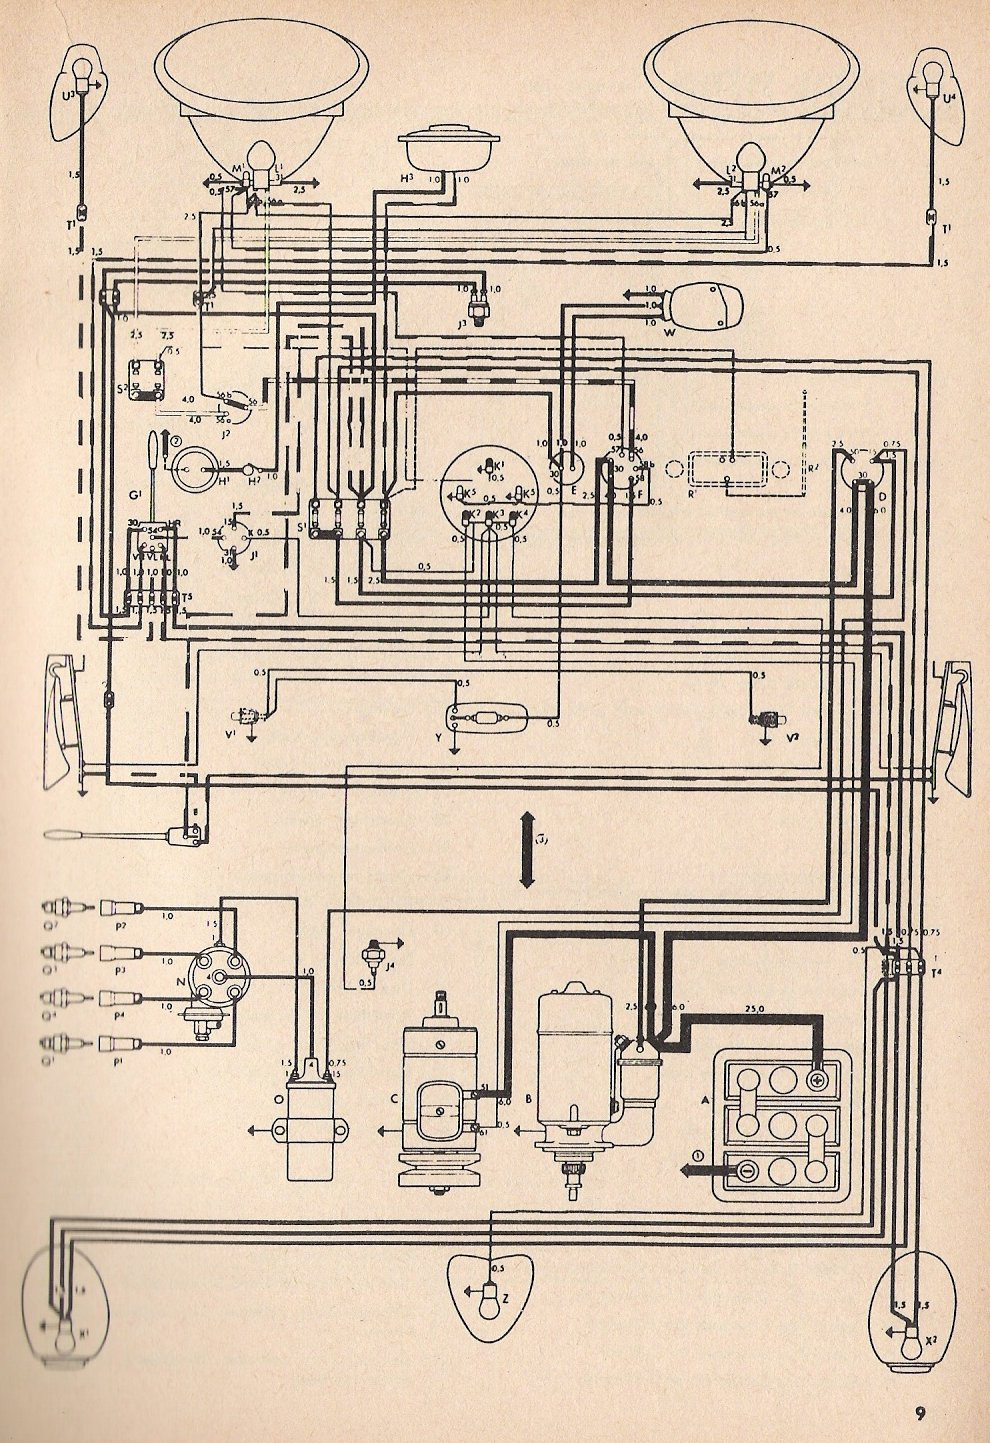 vw wiring diagrams 68 data wiring diagrams \u2022 air cooled vw wiring diagram info from rh vochitos org 67 vw beetle wiring diagram 70 vw wiring diagram